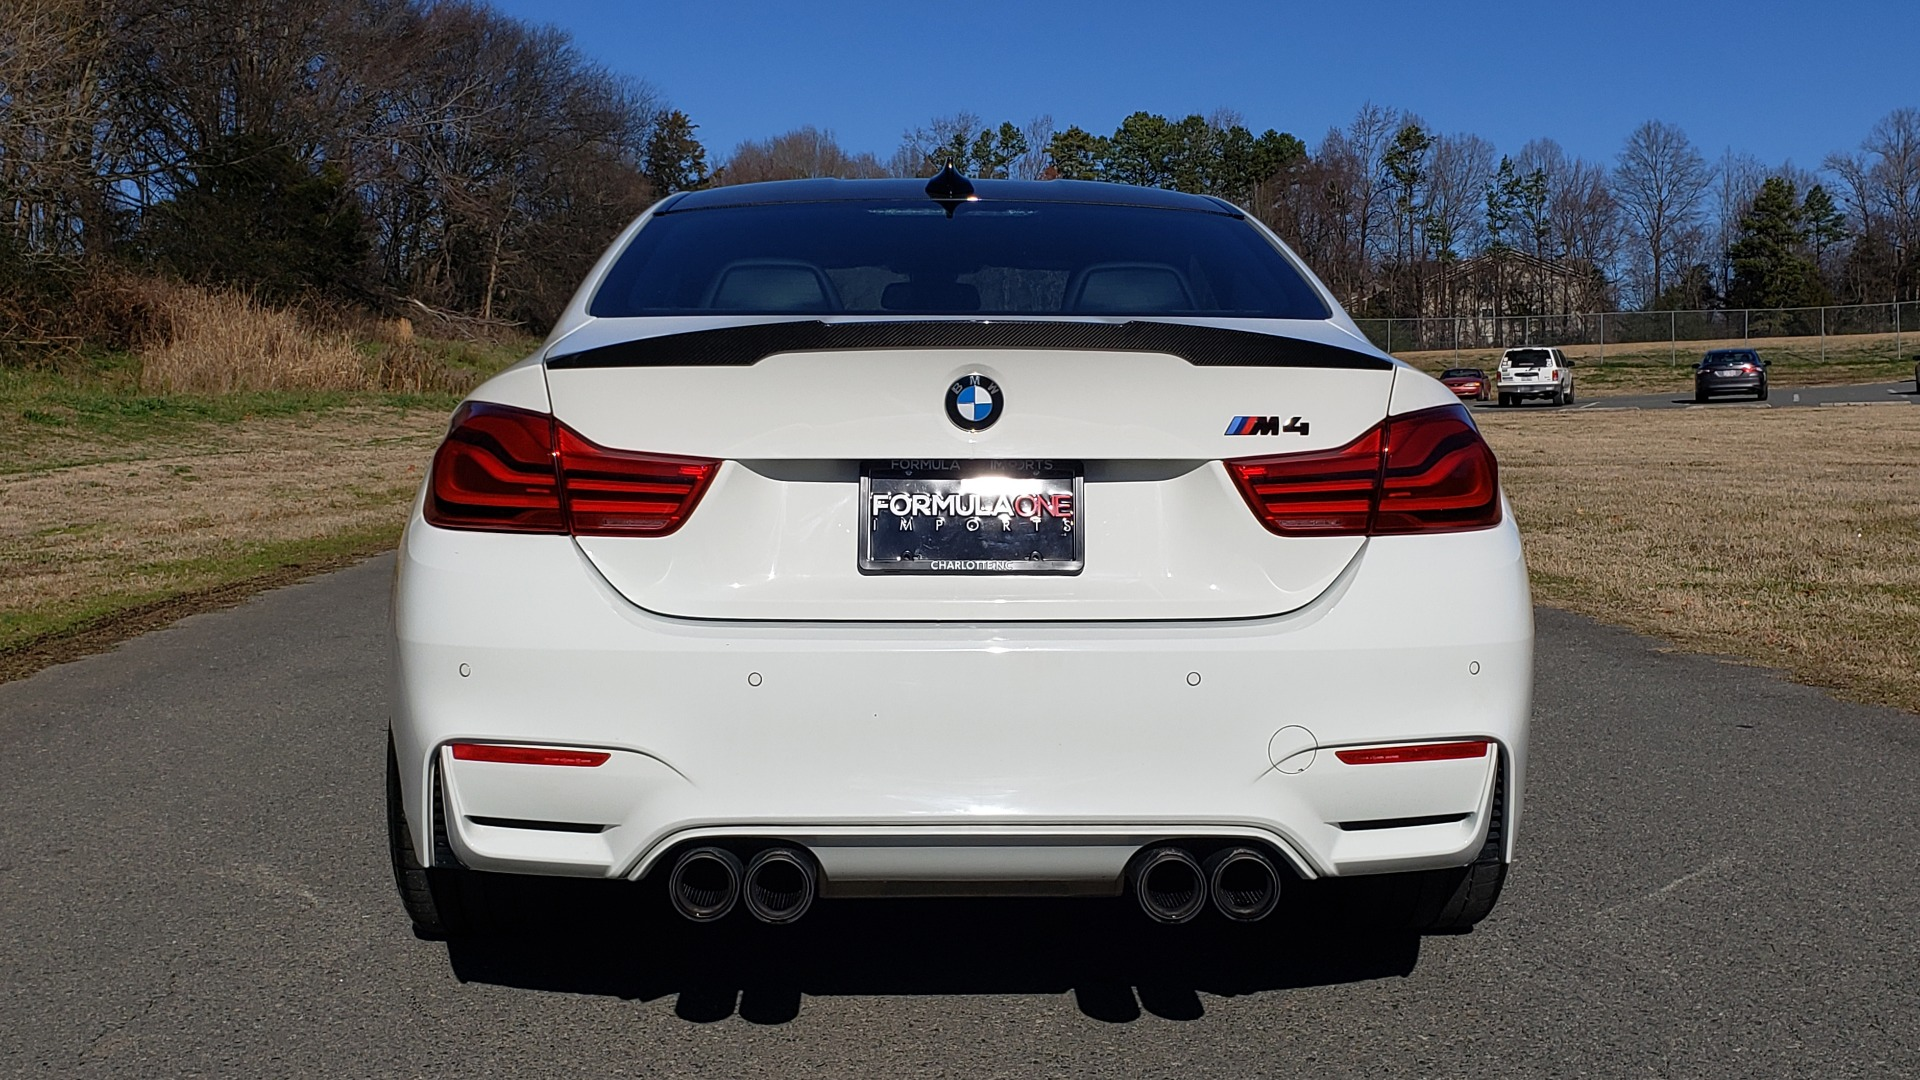 Used 2018 BMW M4 COMP PKG / EXEC / M-DRIVER / PARK CNTRL / ACTIVE BLIND SPOT for sale Sold at Formula Imports in Charlotte NC 28227 27